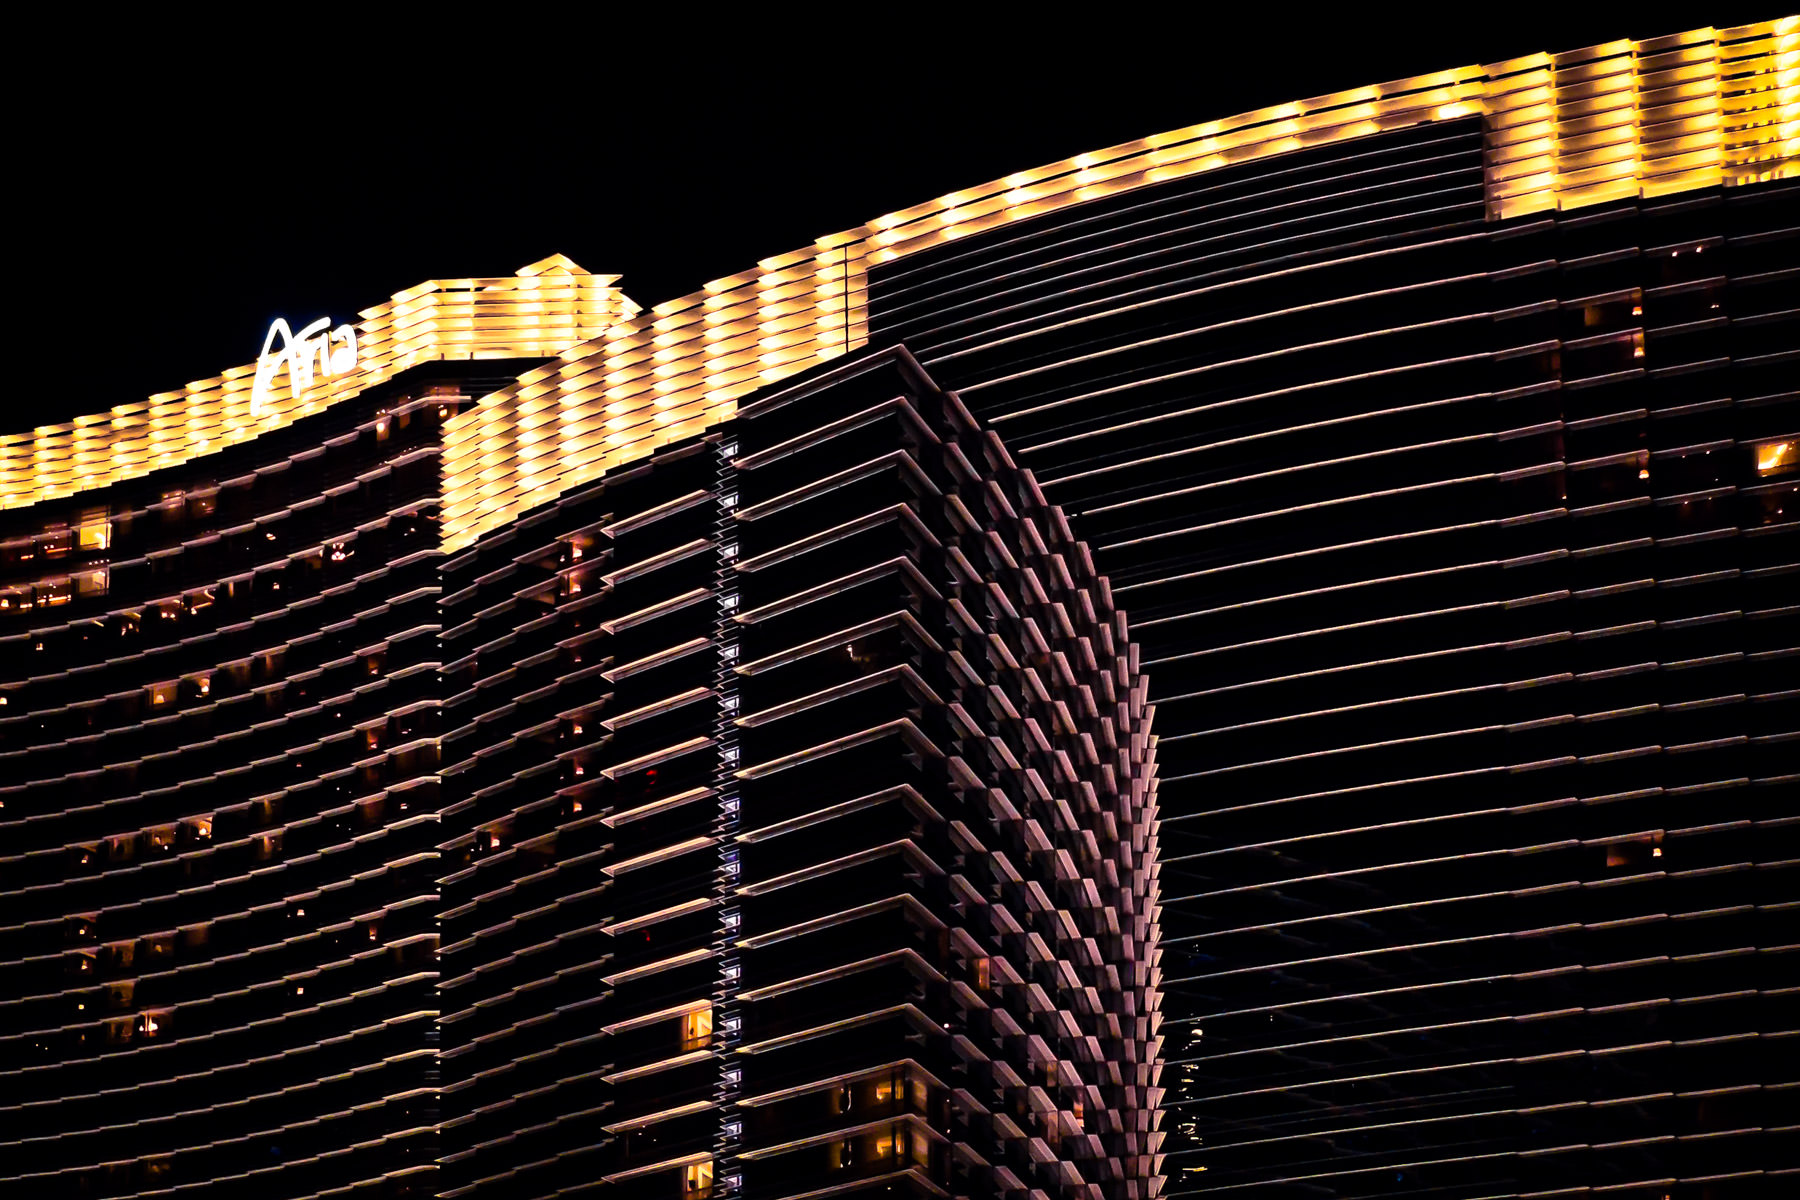 The Aria Hotel and Casino rises into the night sky at CityCenter, Las Vegas.